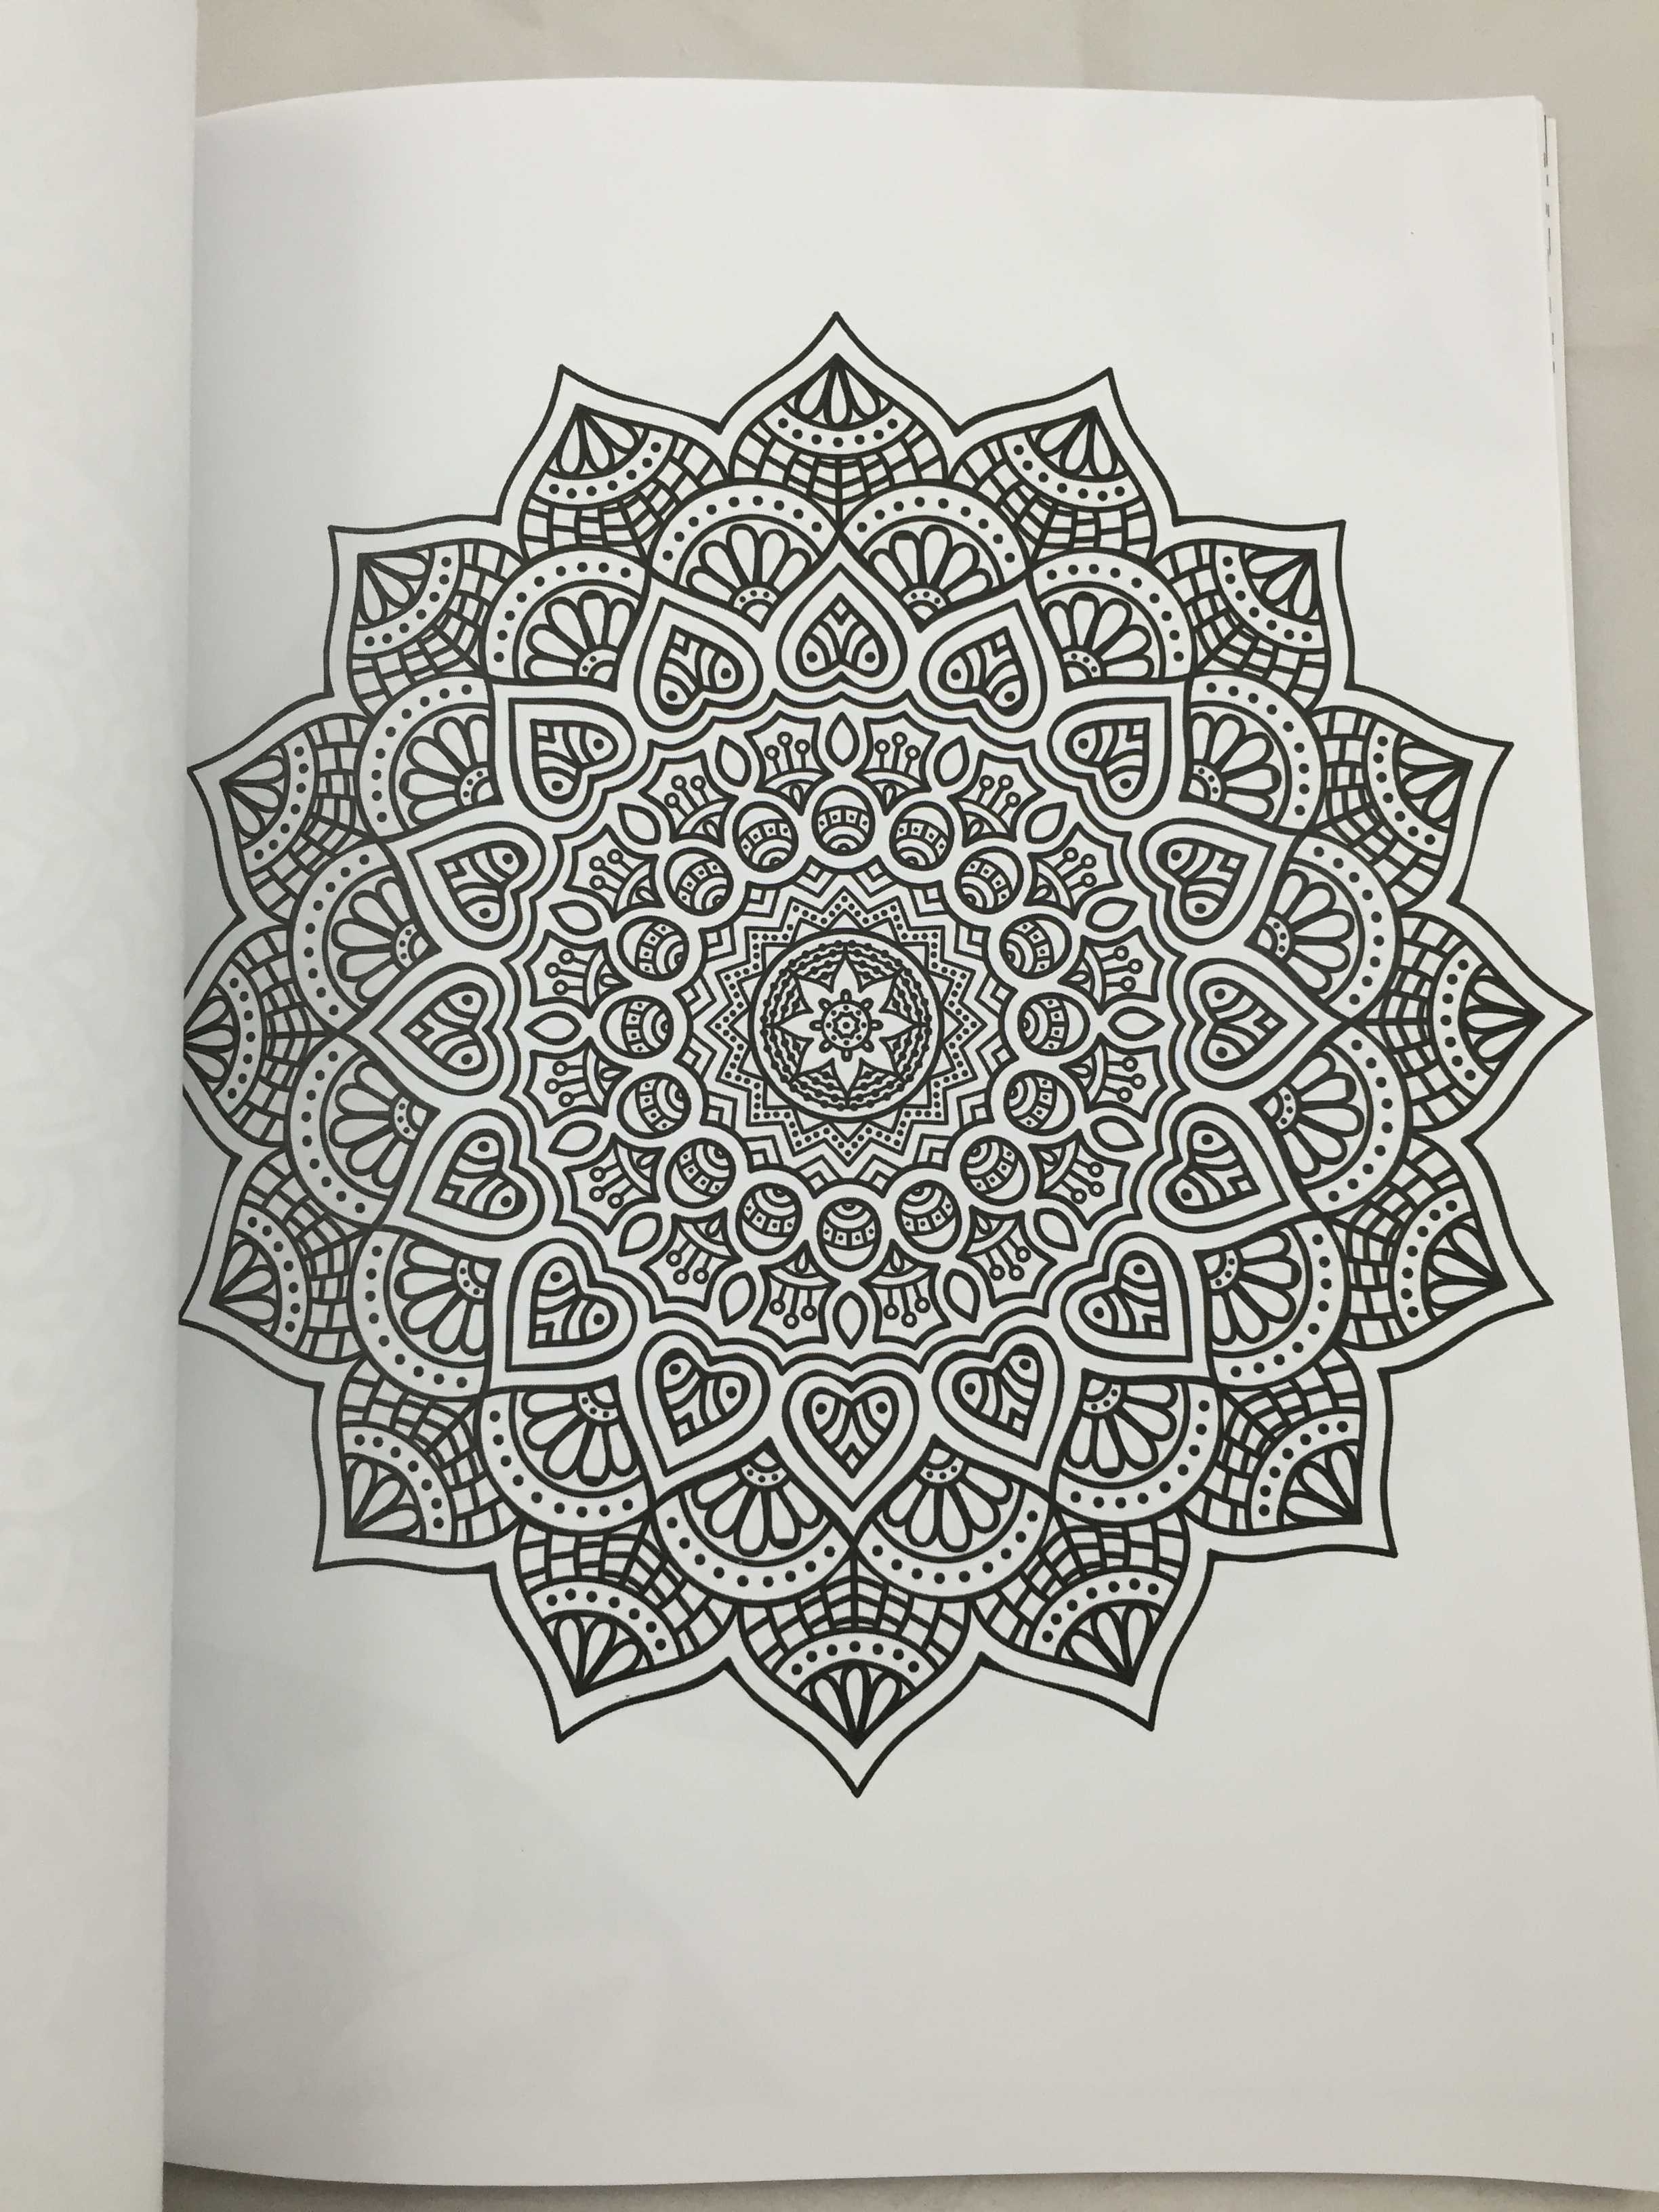 Coloring book for adults ebay - Art Therapy Adult Coloring Book Mandalas And More